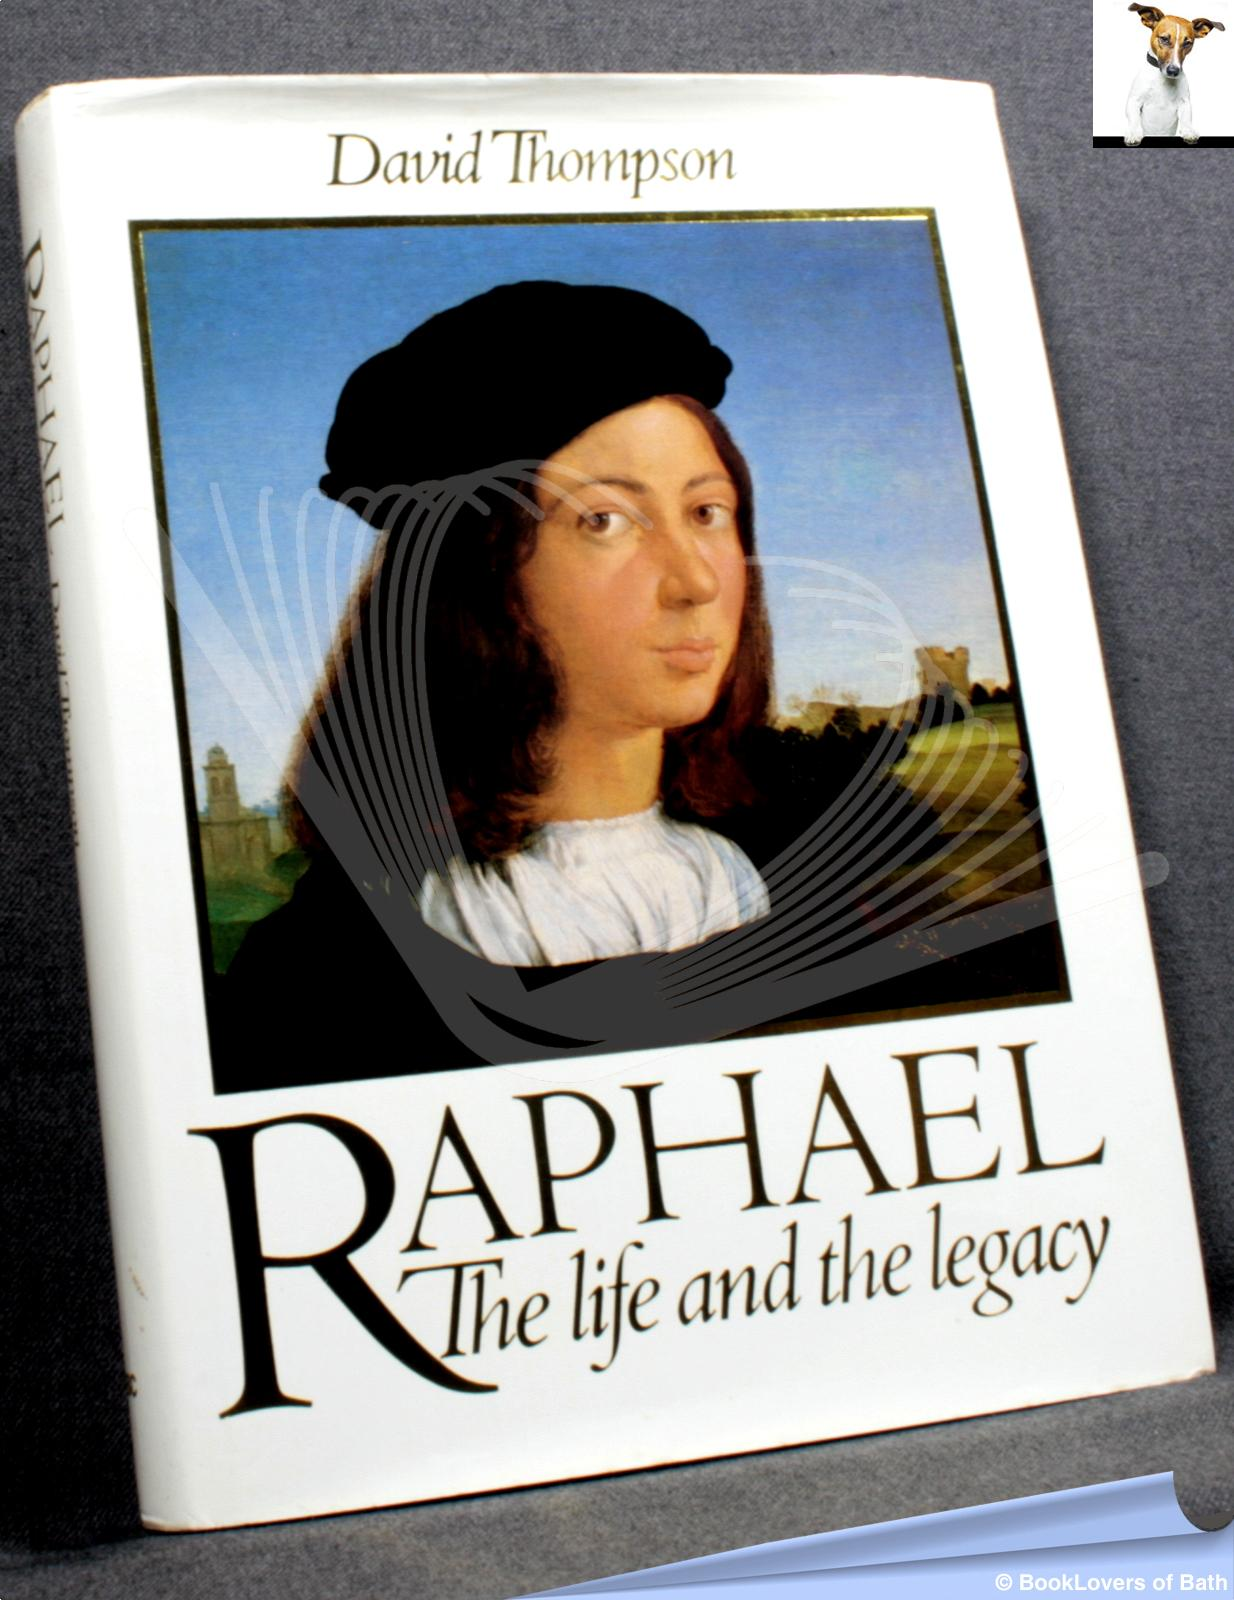 Raphael: The Life and the Legacy - David Thompson